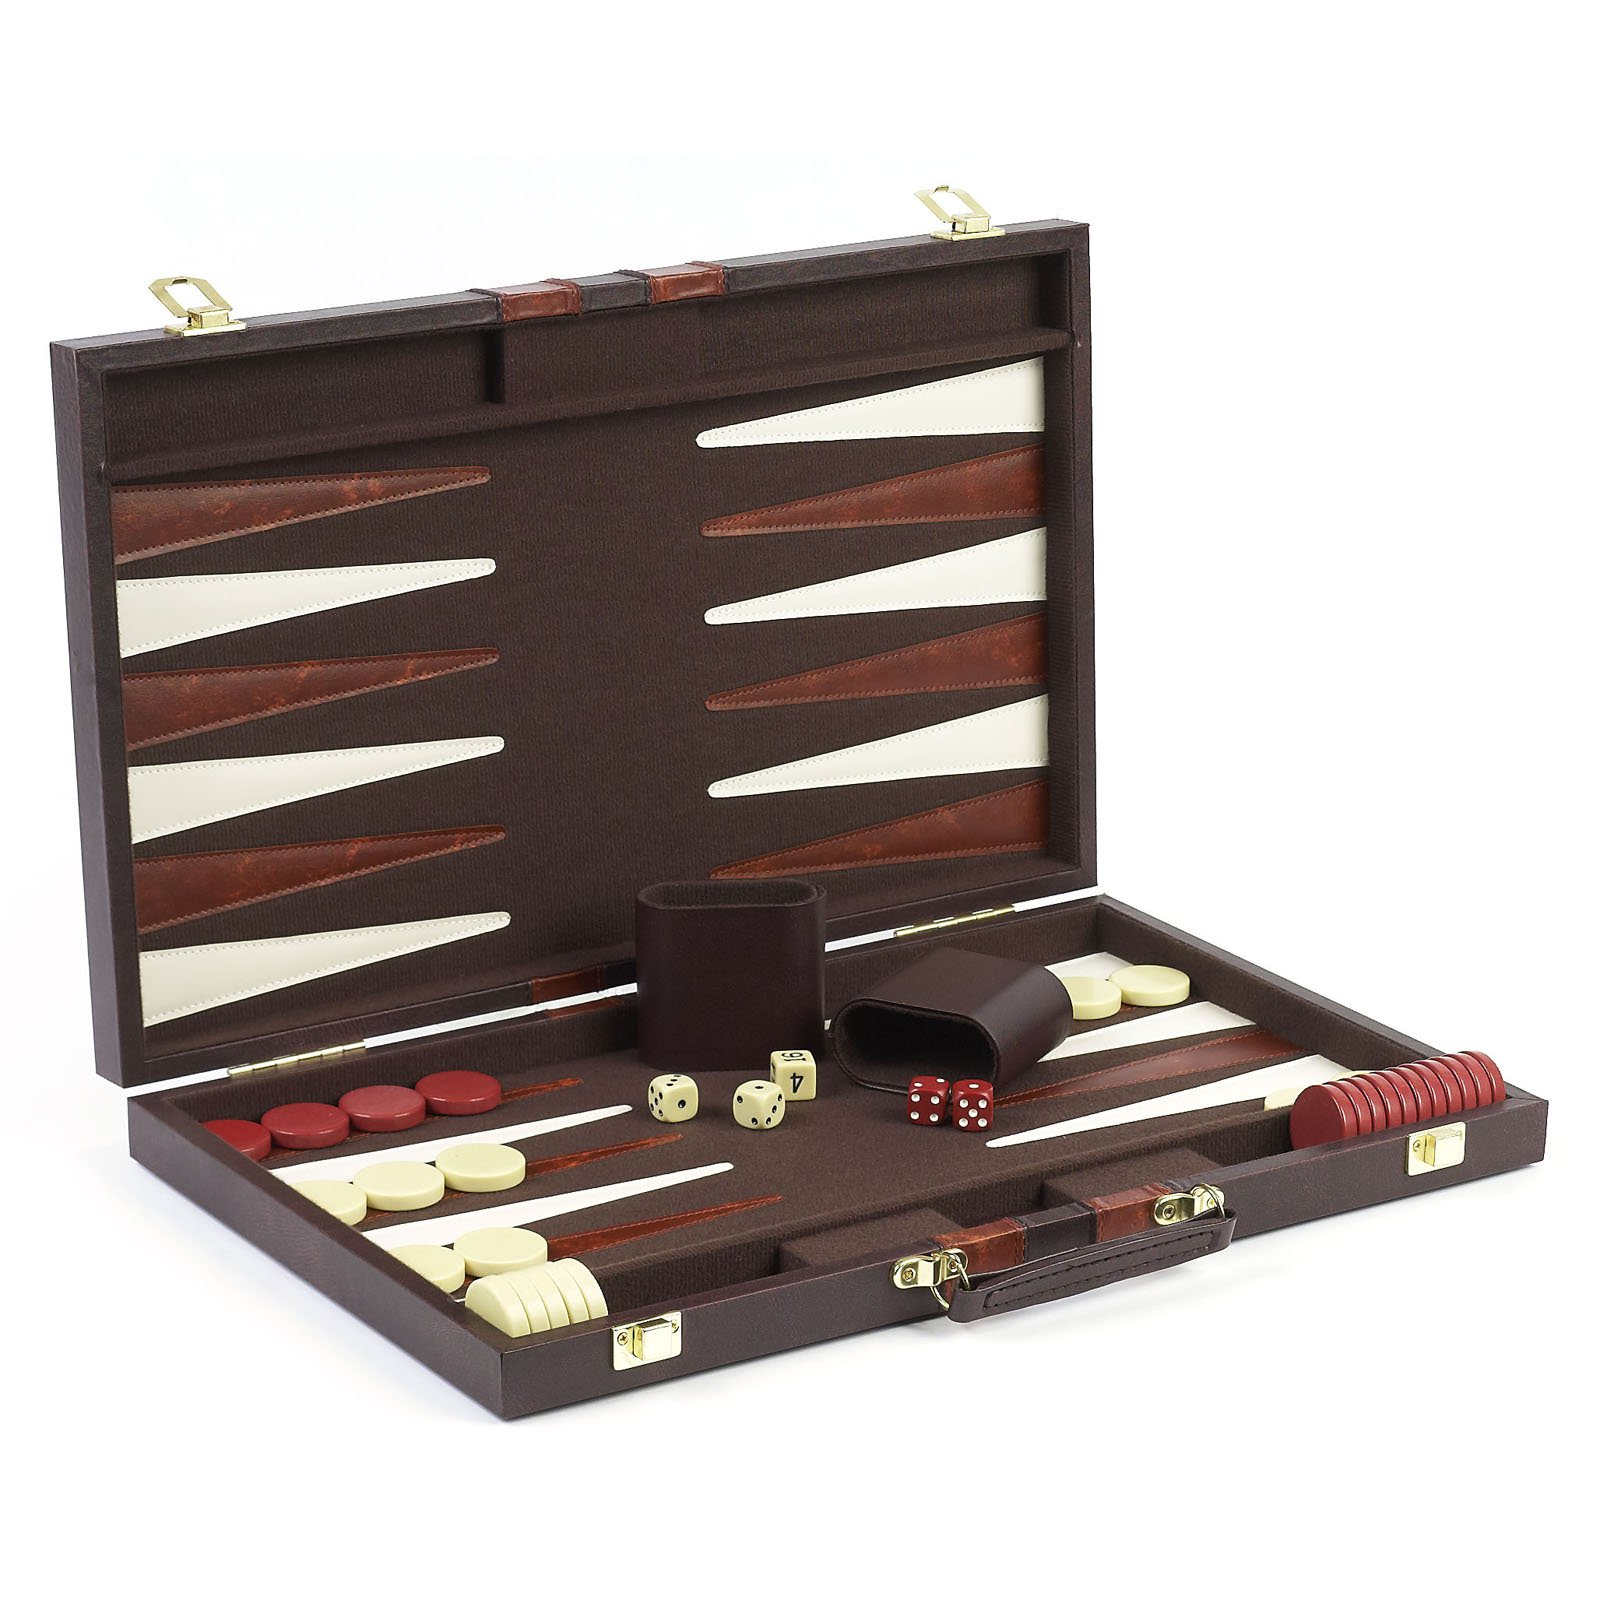 Cambor Games Elite 18 Inch Backgammon Set - Brown